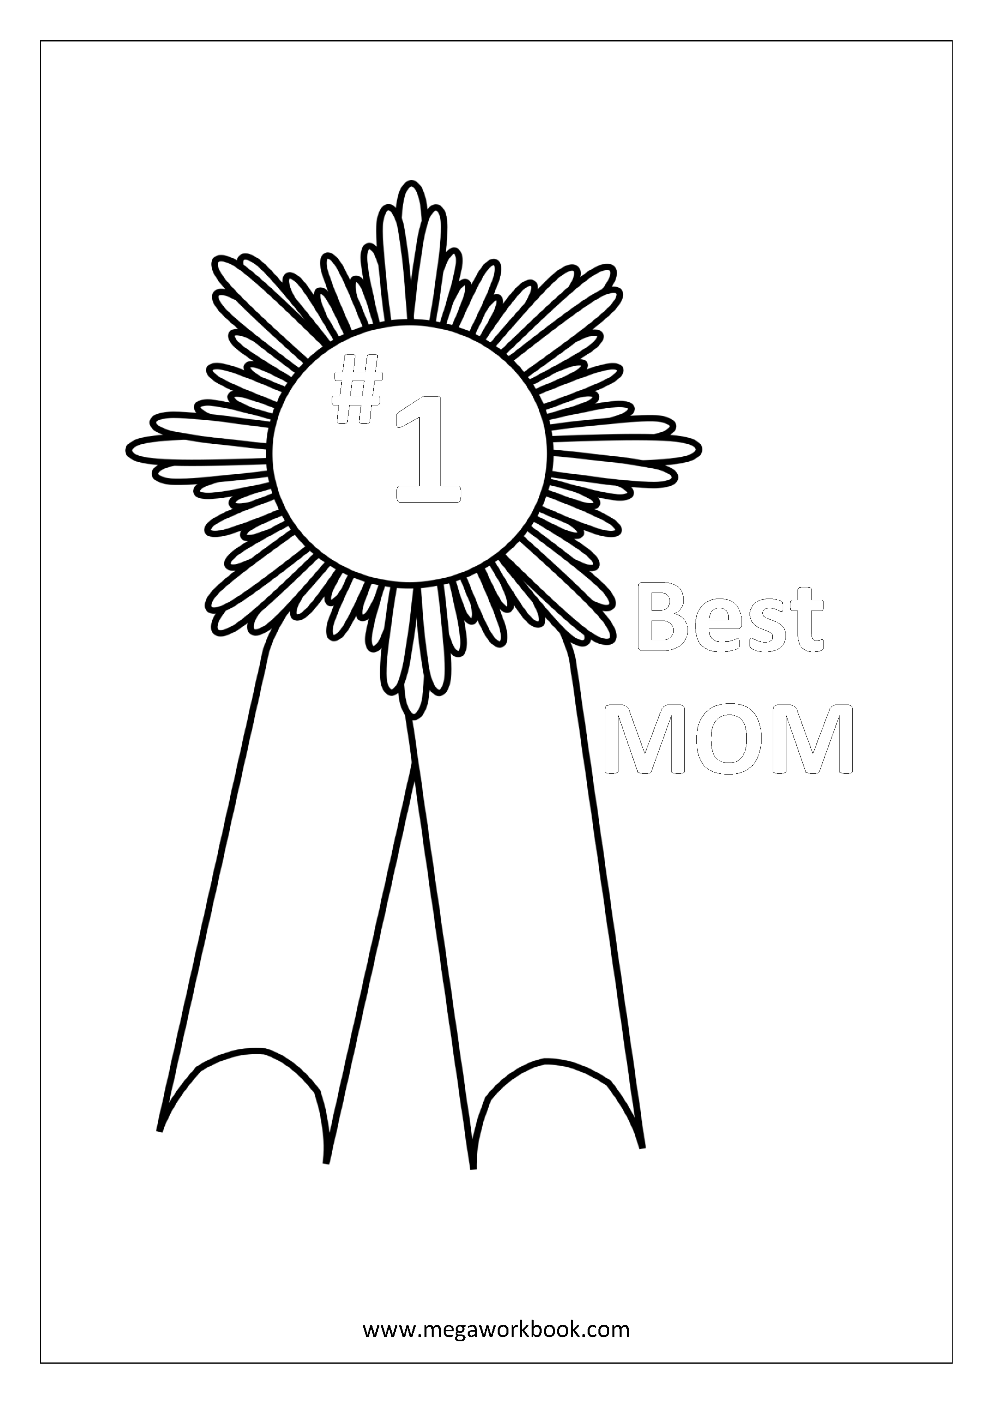 Free Coloring Sheets - Mother\'s Day - MegaWorkbook